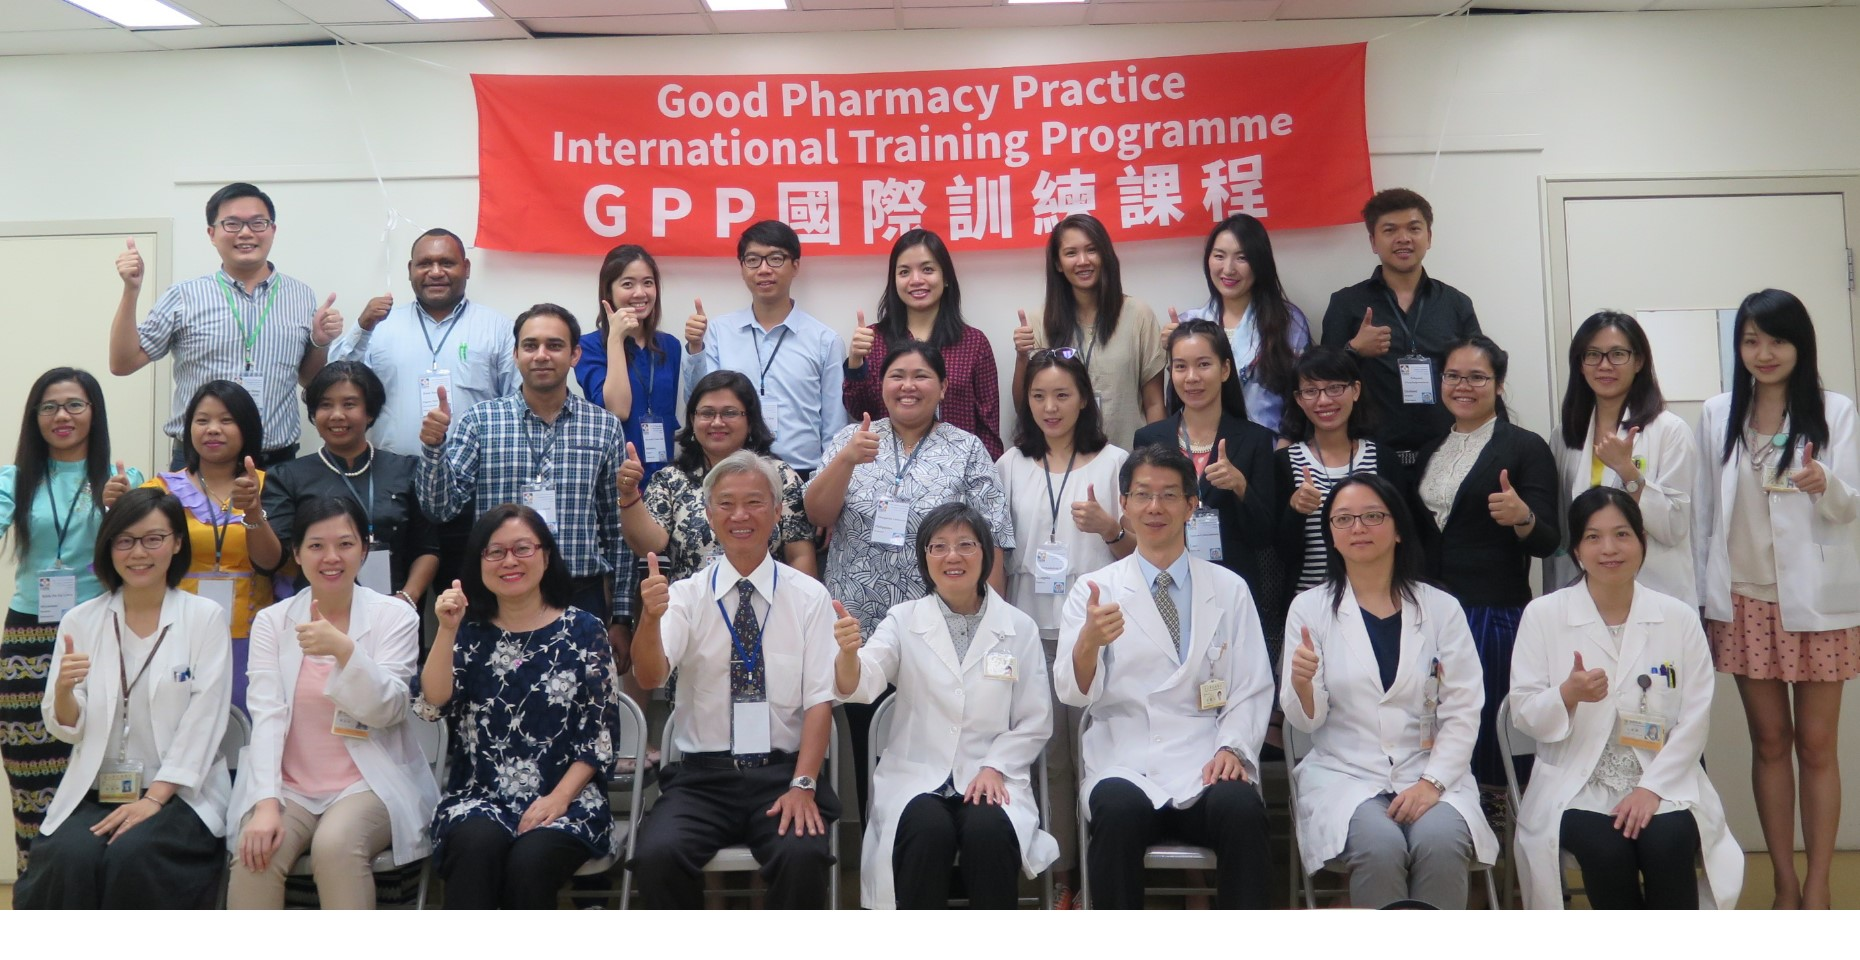 2017 Good Pharmacy Practice (GPP) International Training Programme at Taipei Veterans General Hospital hosted by FAPA Foundation.